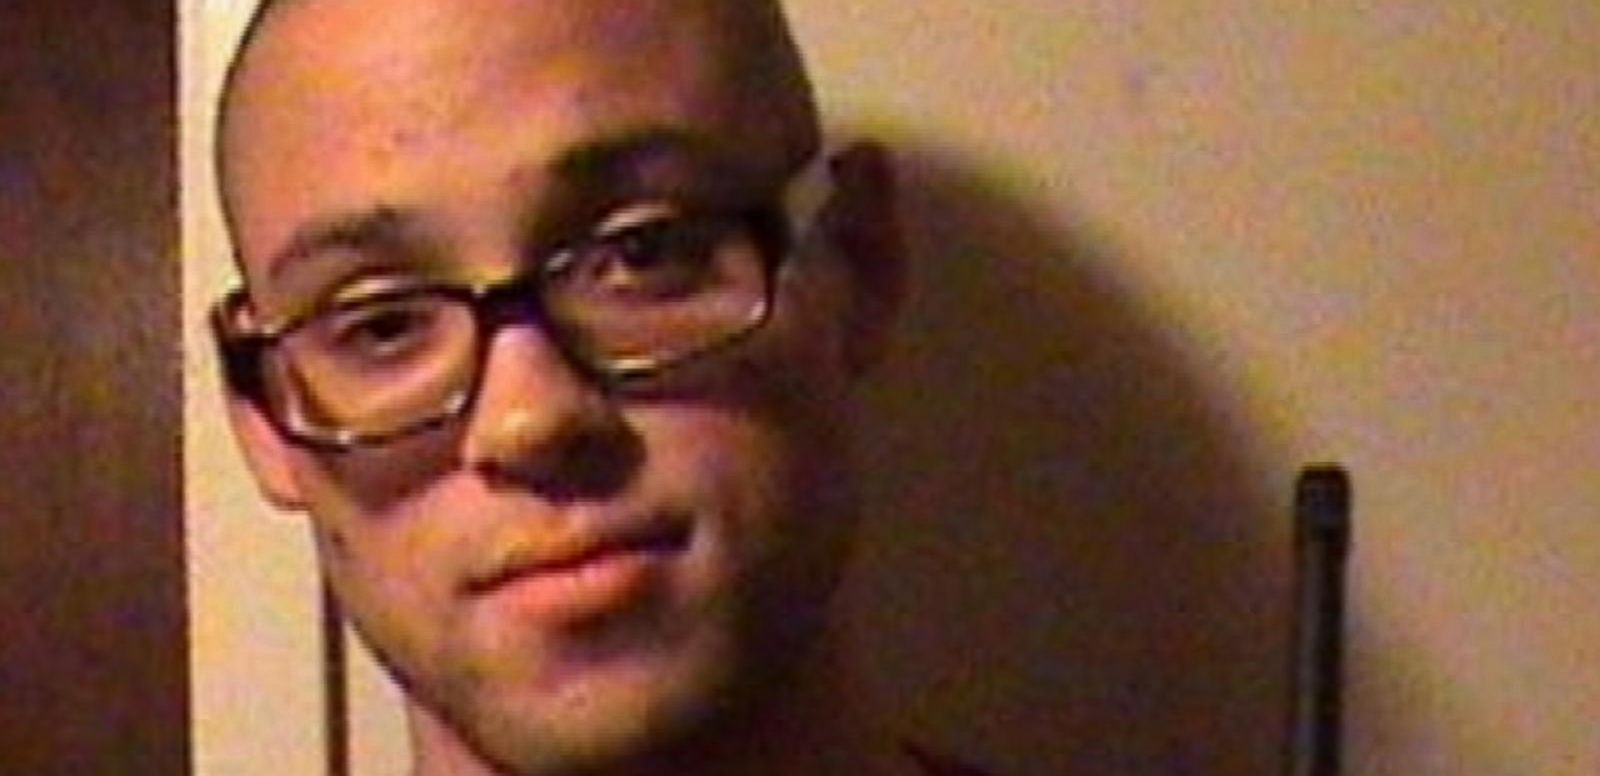 Oregon College Shooting: More Details Emerge on Gunman